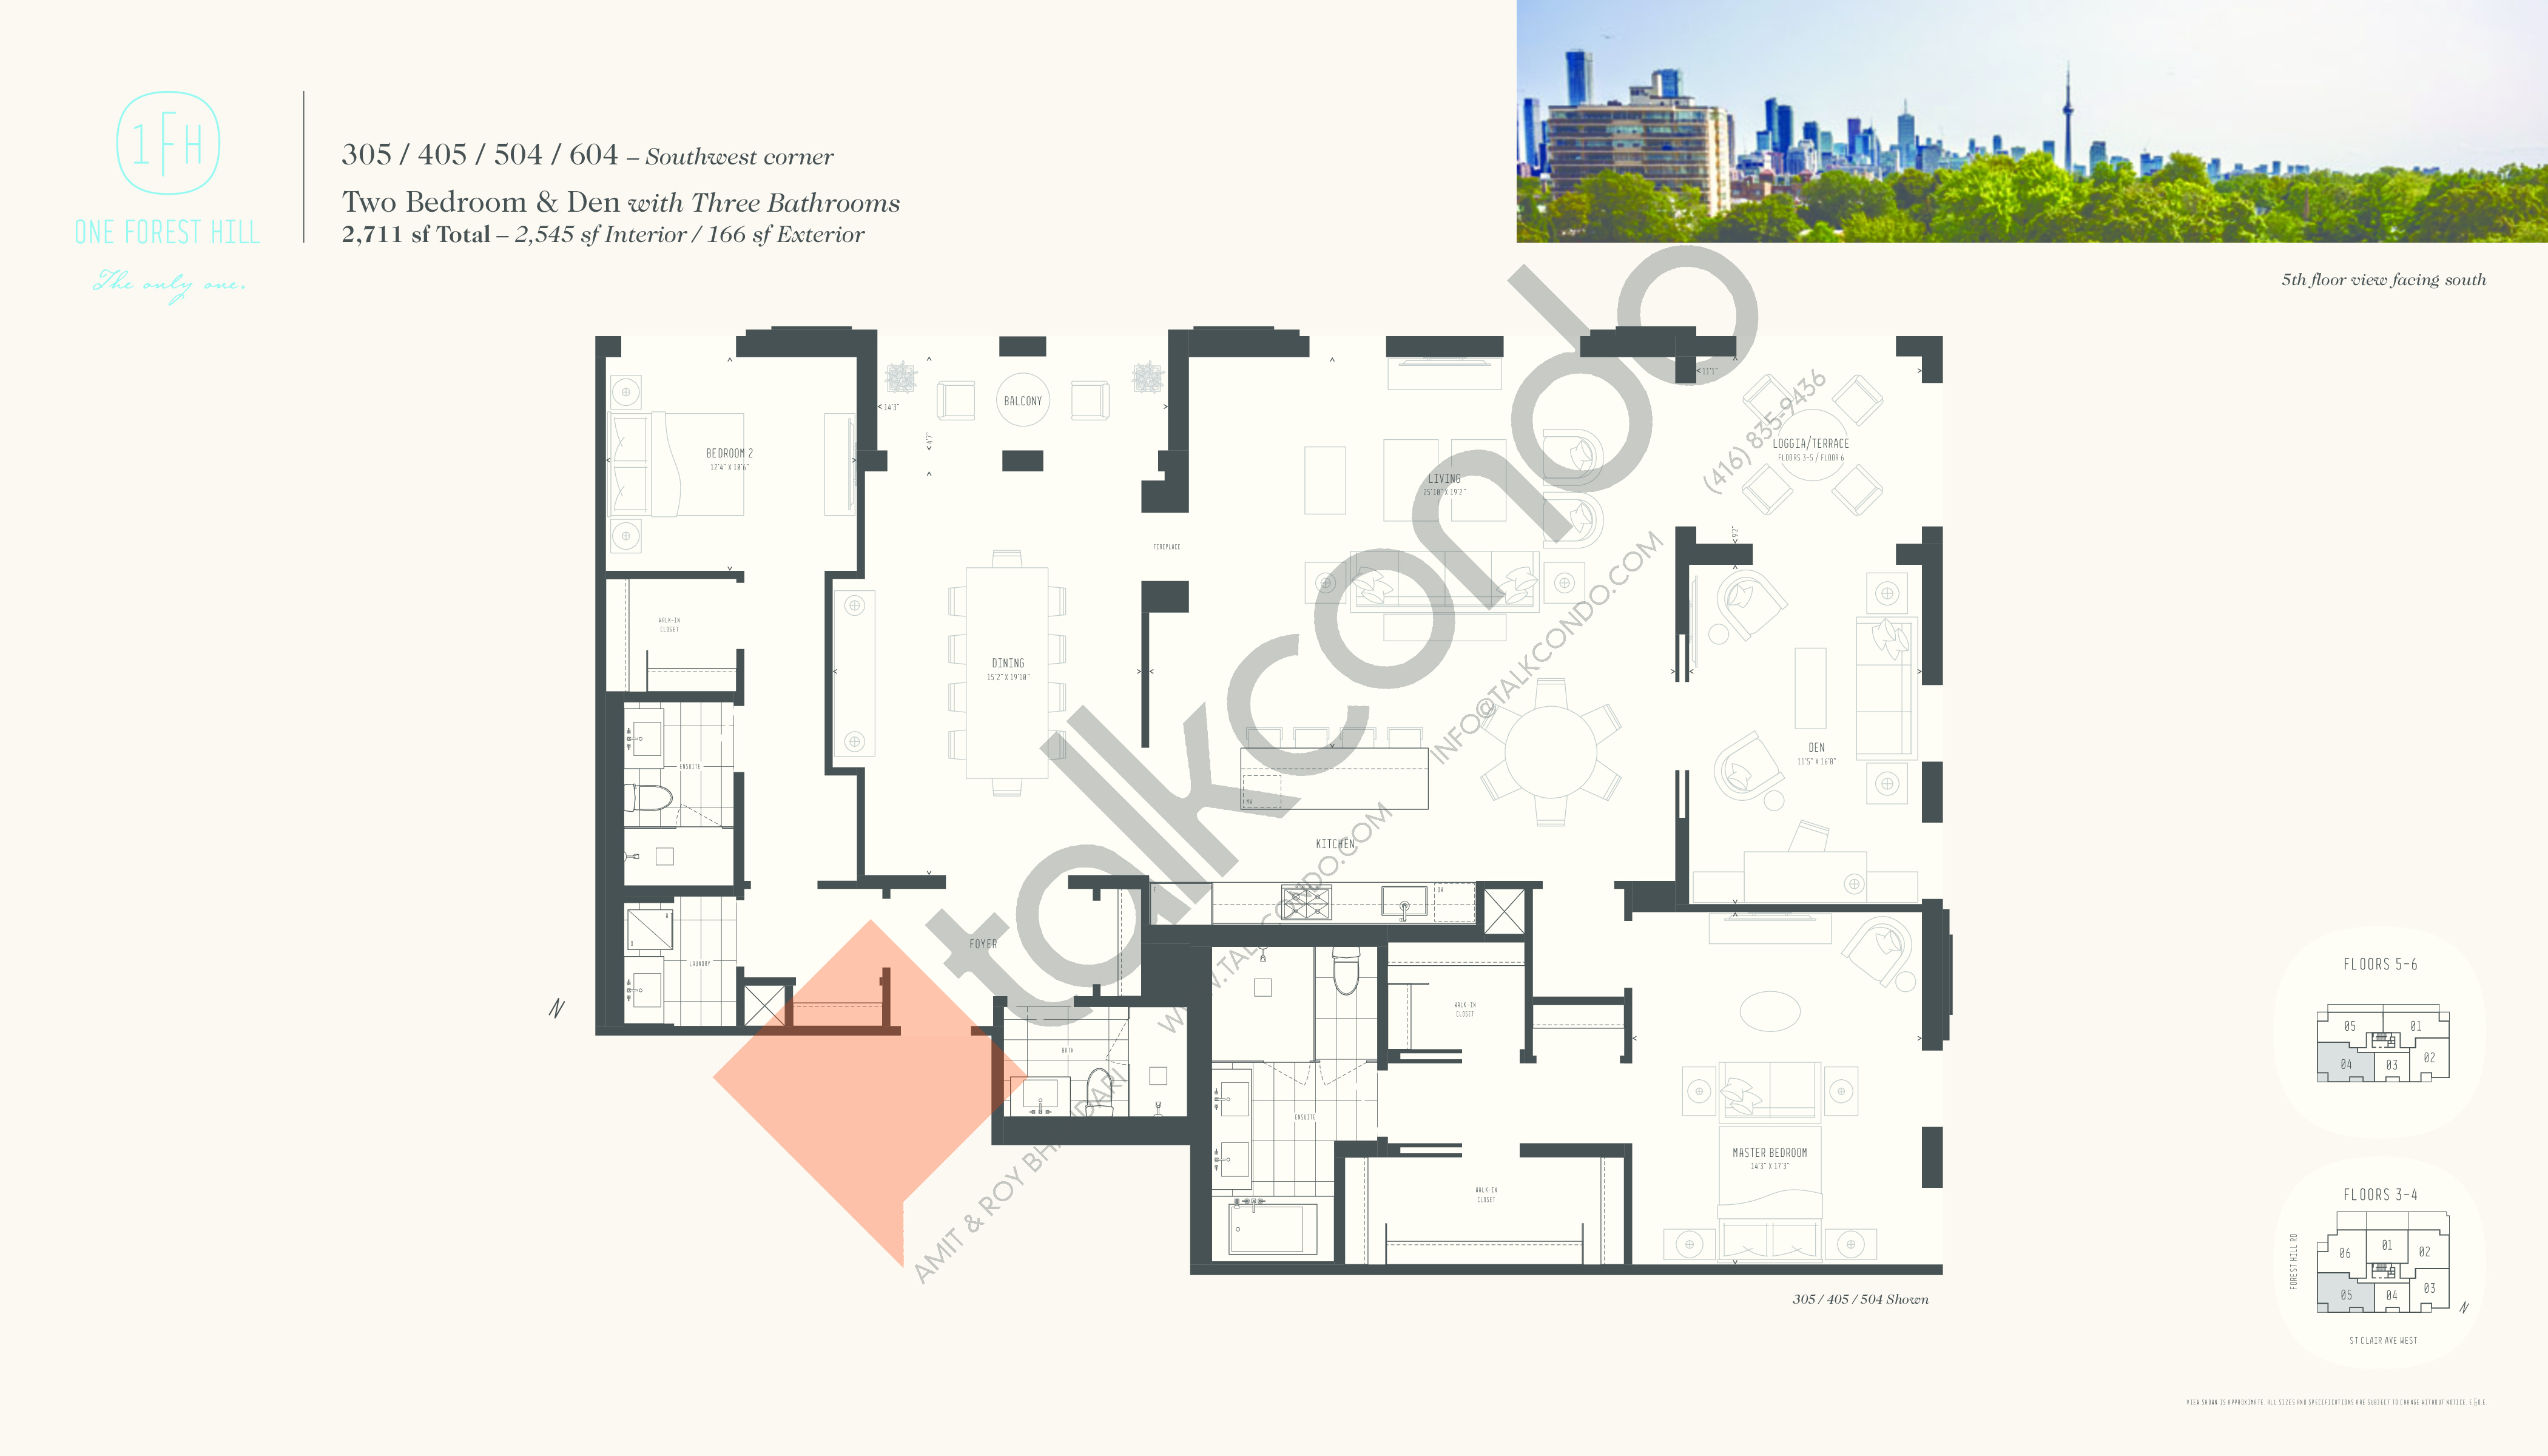 305 / 405 / 504 / 604 Floor Plan at One Forest Hill Condos - 2545 sq.ft